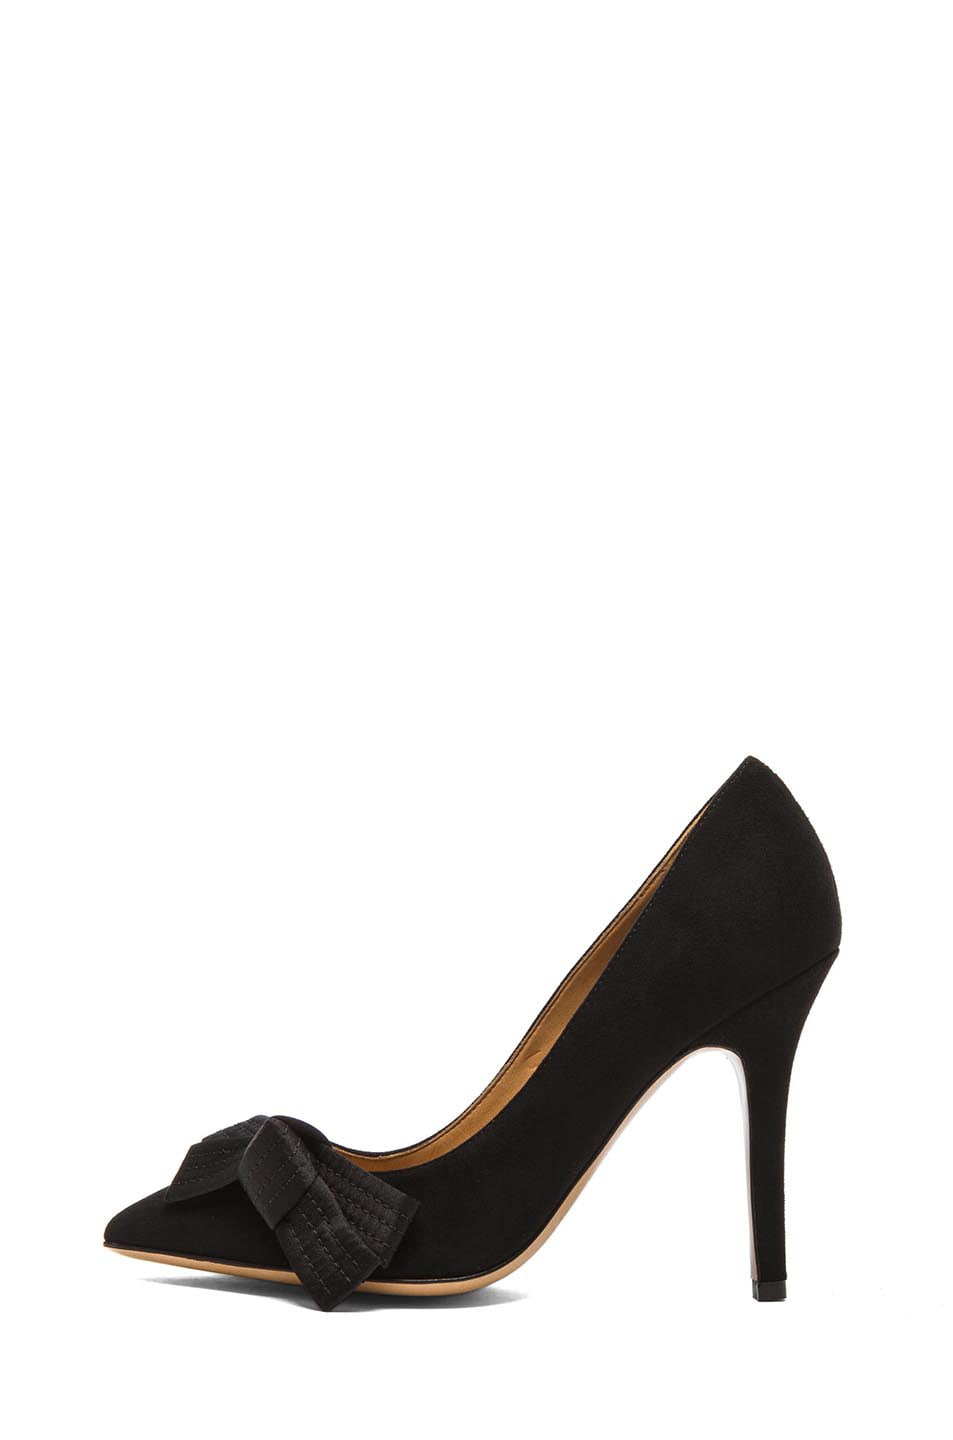 Image 1 of Isabel Marant Poppy Suede Pumps in Black